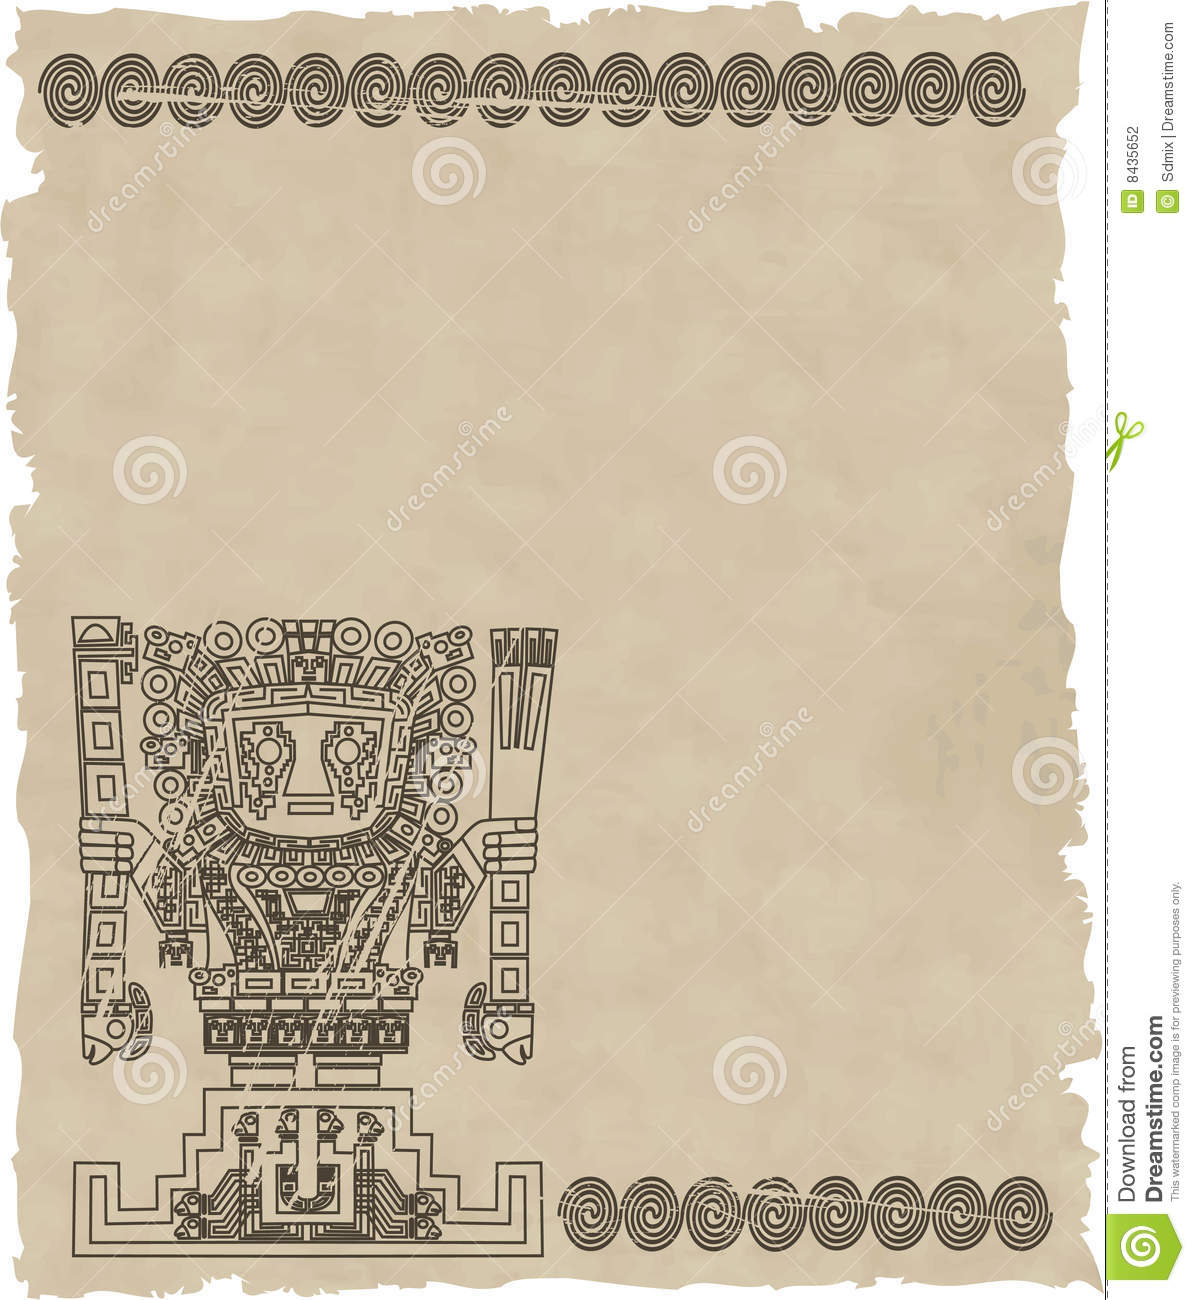 Vector mayan and inca tribal symbols on old paper stock vector vector mayan and inca tribal symbols on old paper biocorpaavc